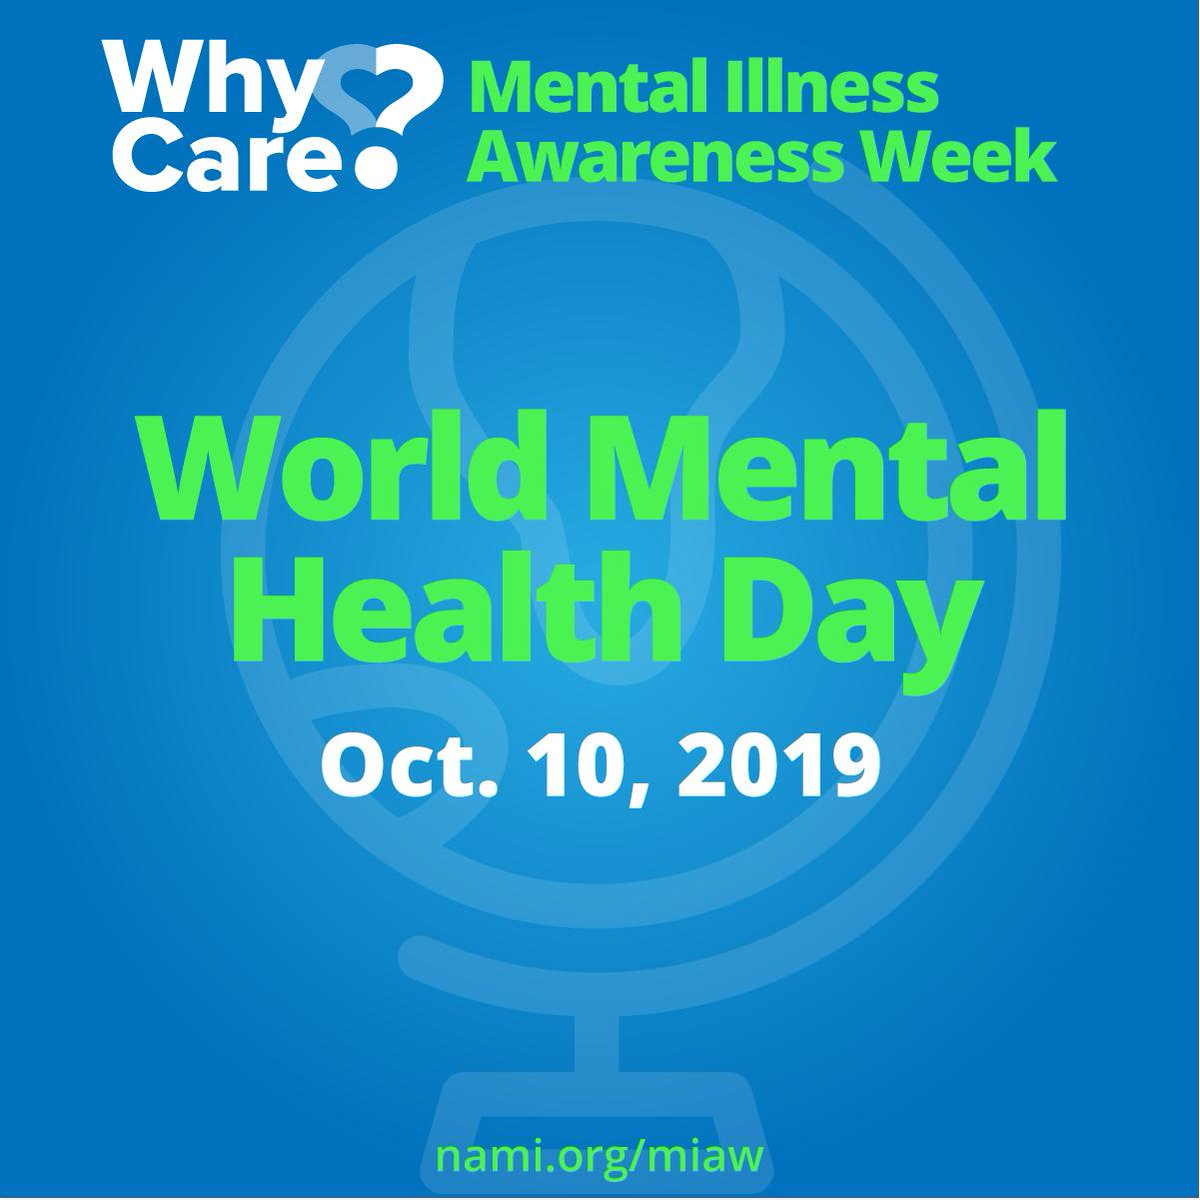 Today is #WorldMentalHealthDay! Mental health care is health care – and taking care of your mental health is just as important to your overall wellbeing as your physical health.